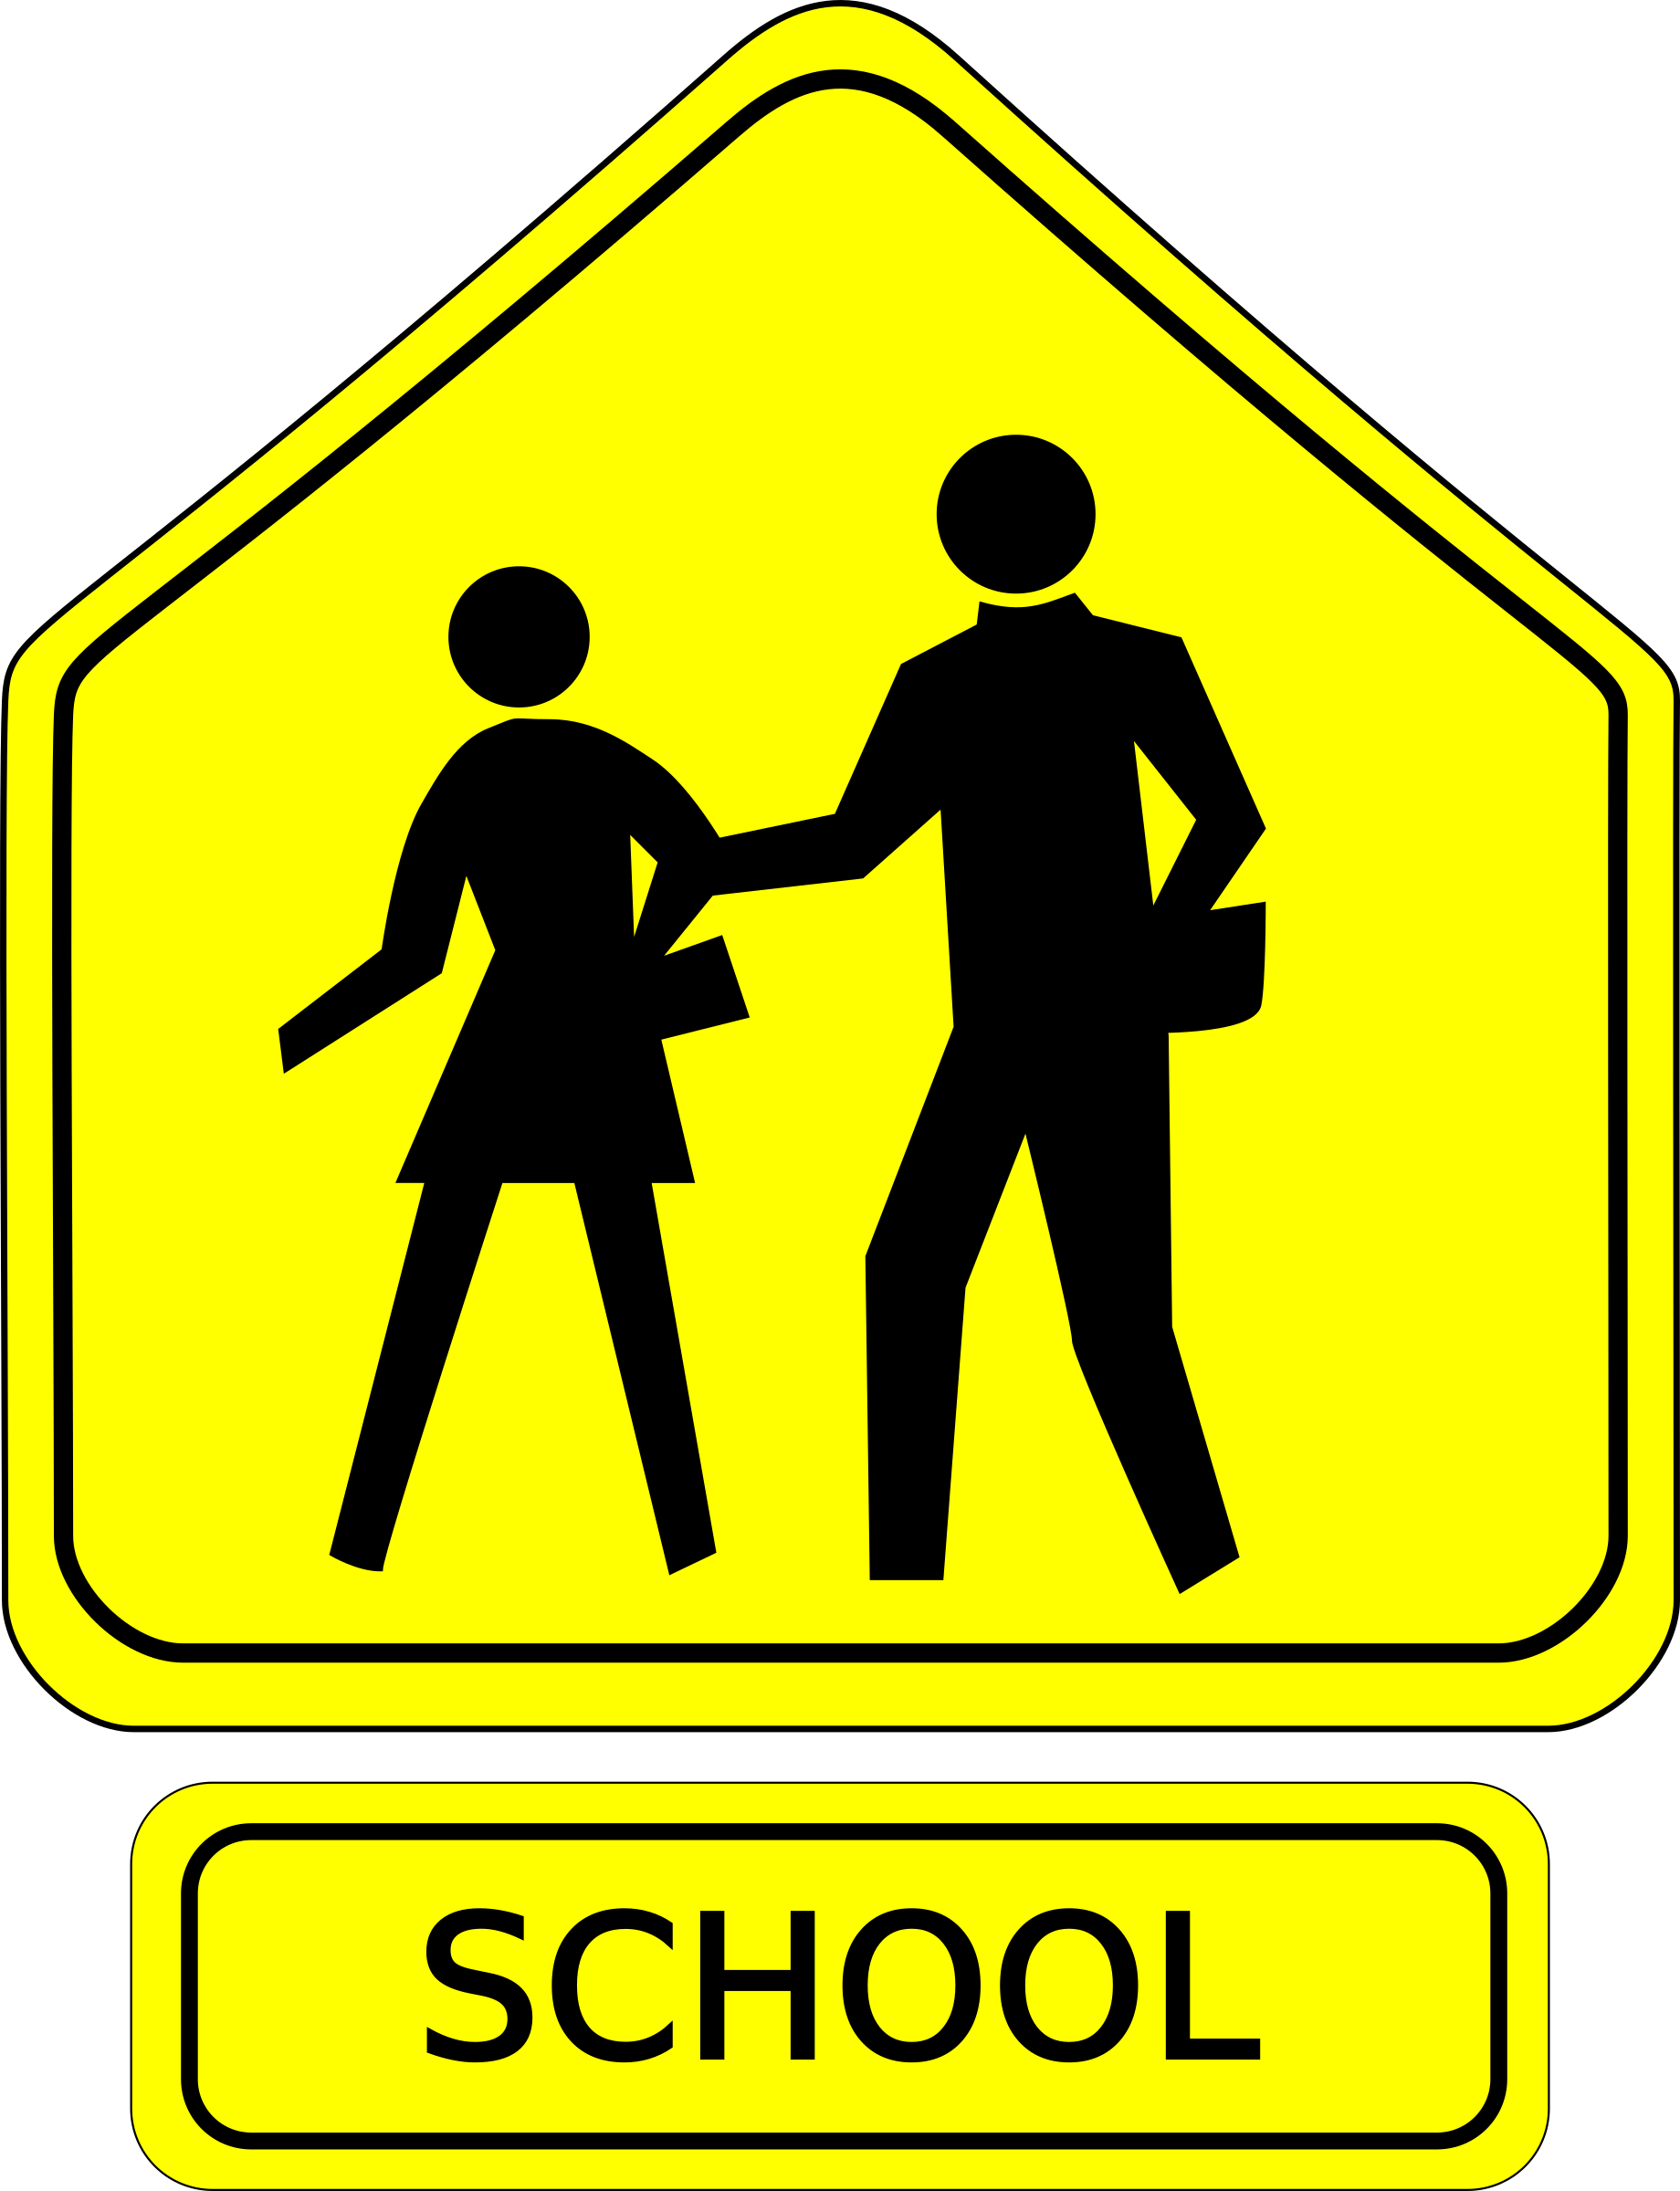 School sign png. Crossing caution icons free